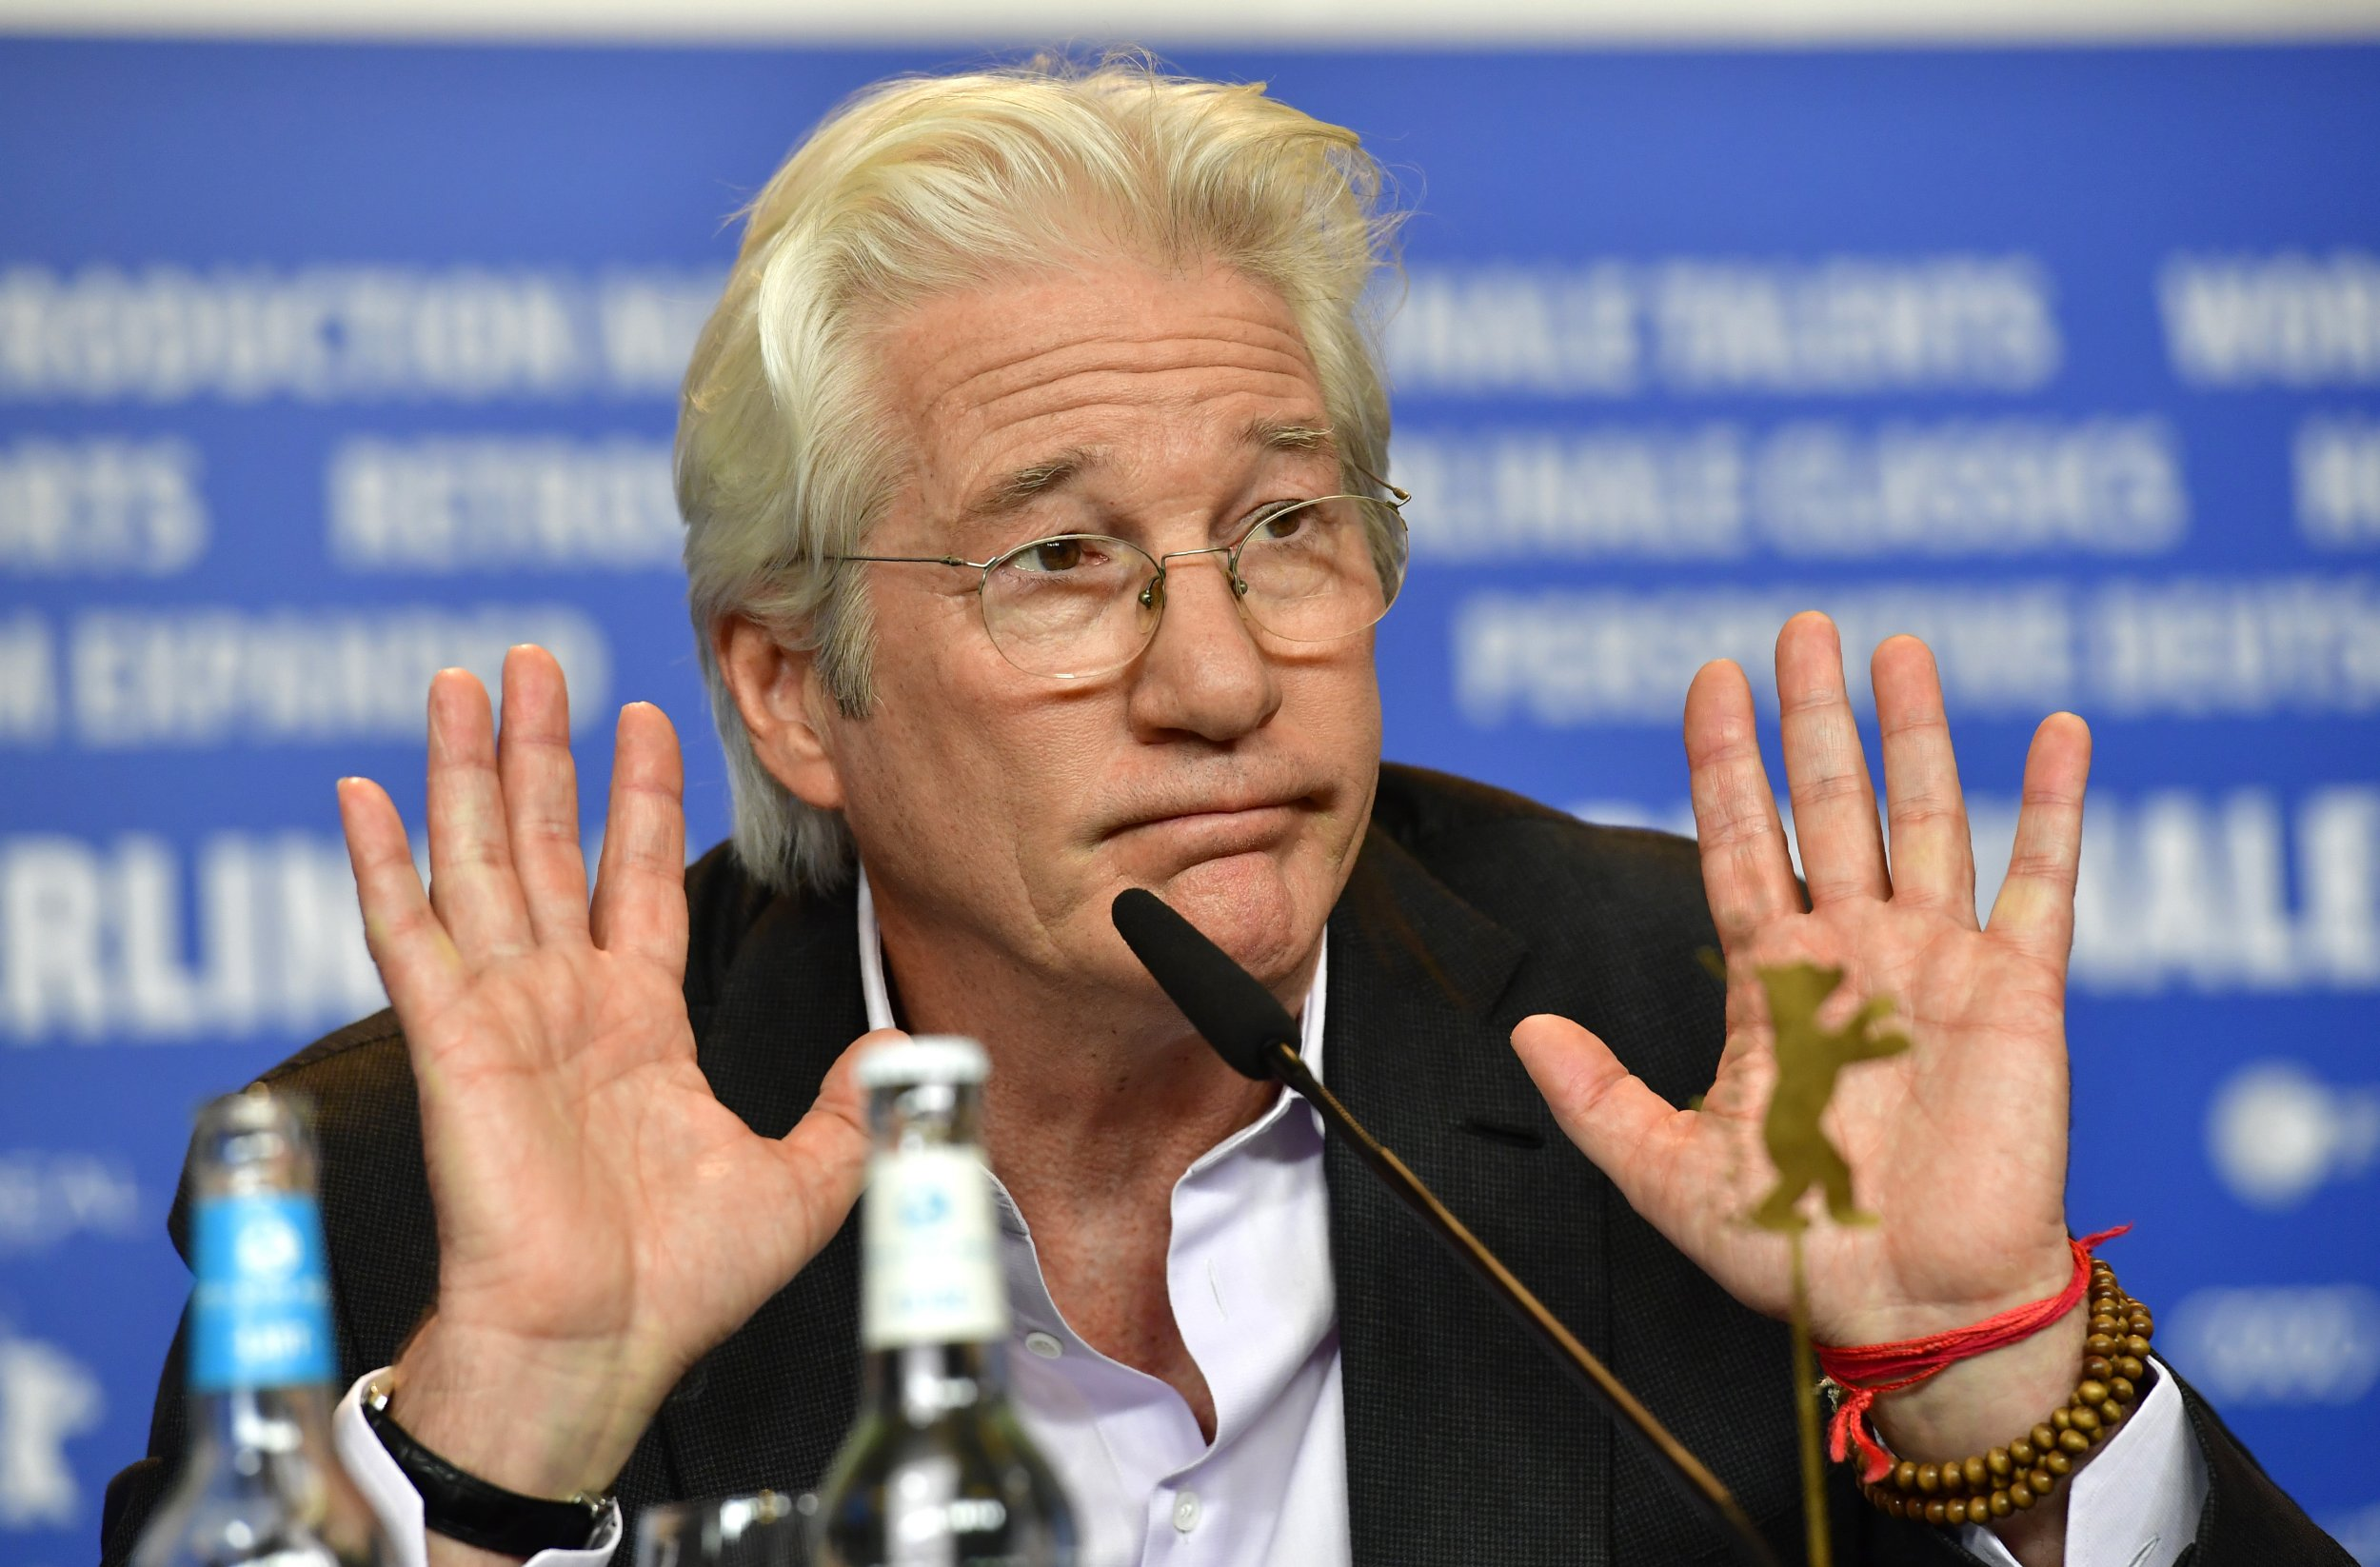 Richard Gere: There Is 'No Defense' of Israel's Occupation or 'Illegal' Settlements